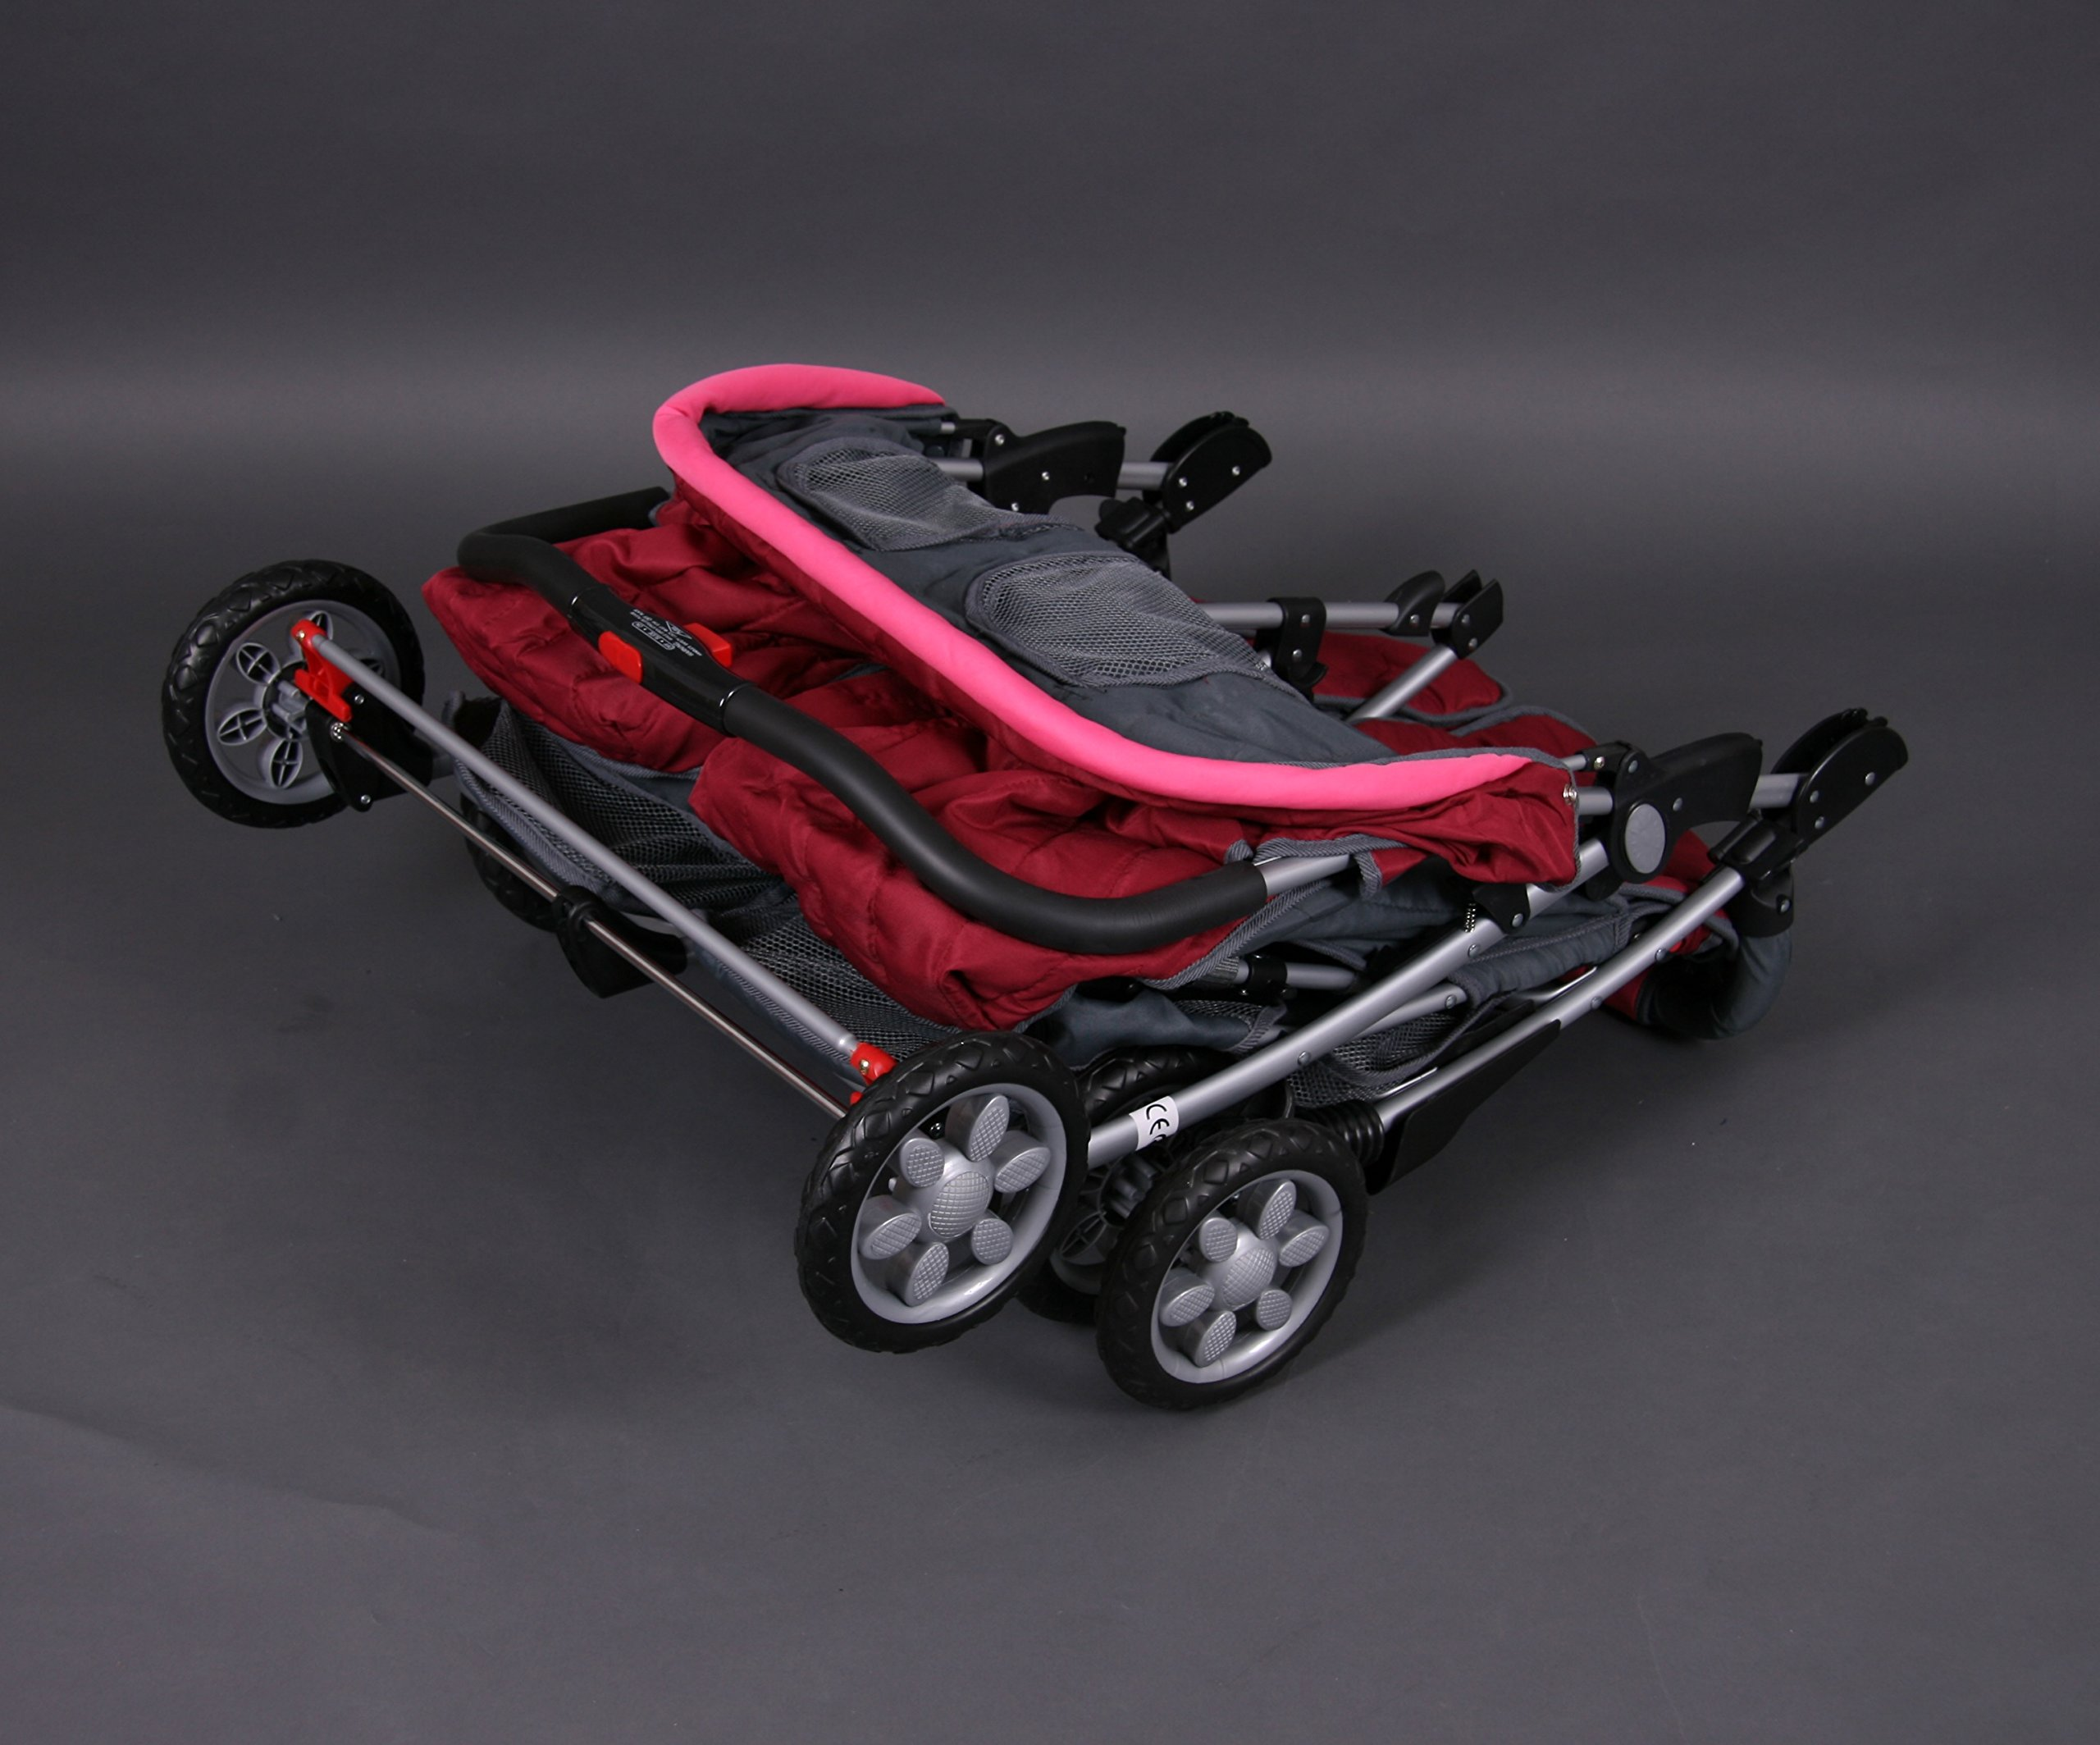 Deluxe Tandem - Twin Pram rose - BambinoWorld Bambino World Ideal pram for parents of twins or children with small difference in age.Thus you remain mobile also with 2 babies or infants. Main features: Very compact and light ; Adjustable backrest ; Foot rests adjustable ; Easy folding . 100% safety for your child : 5-point safety harness ; Brake on rear wheels ; Lockable swivel front wheels ; Complies with strict European norms . 7